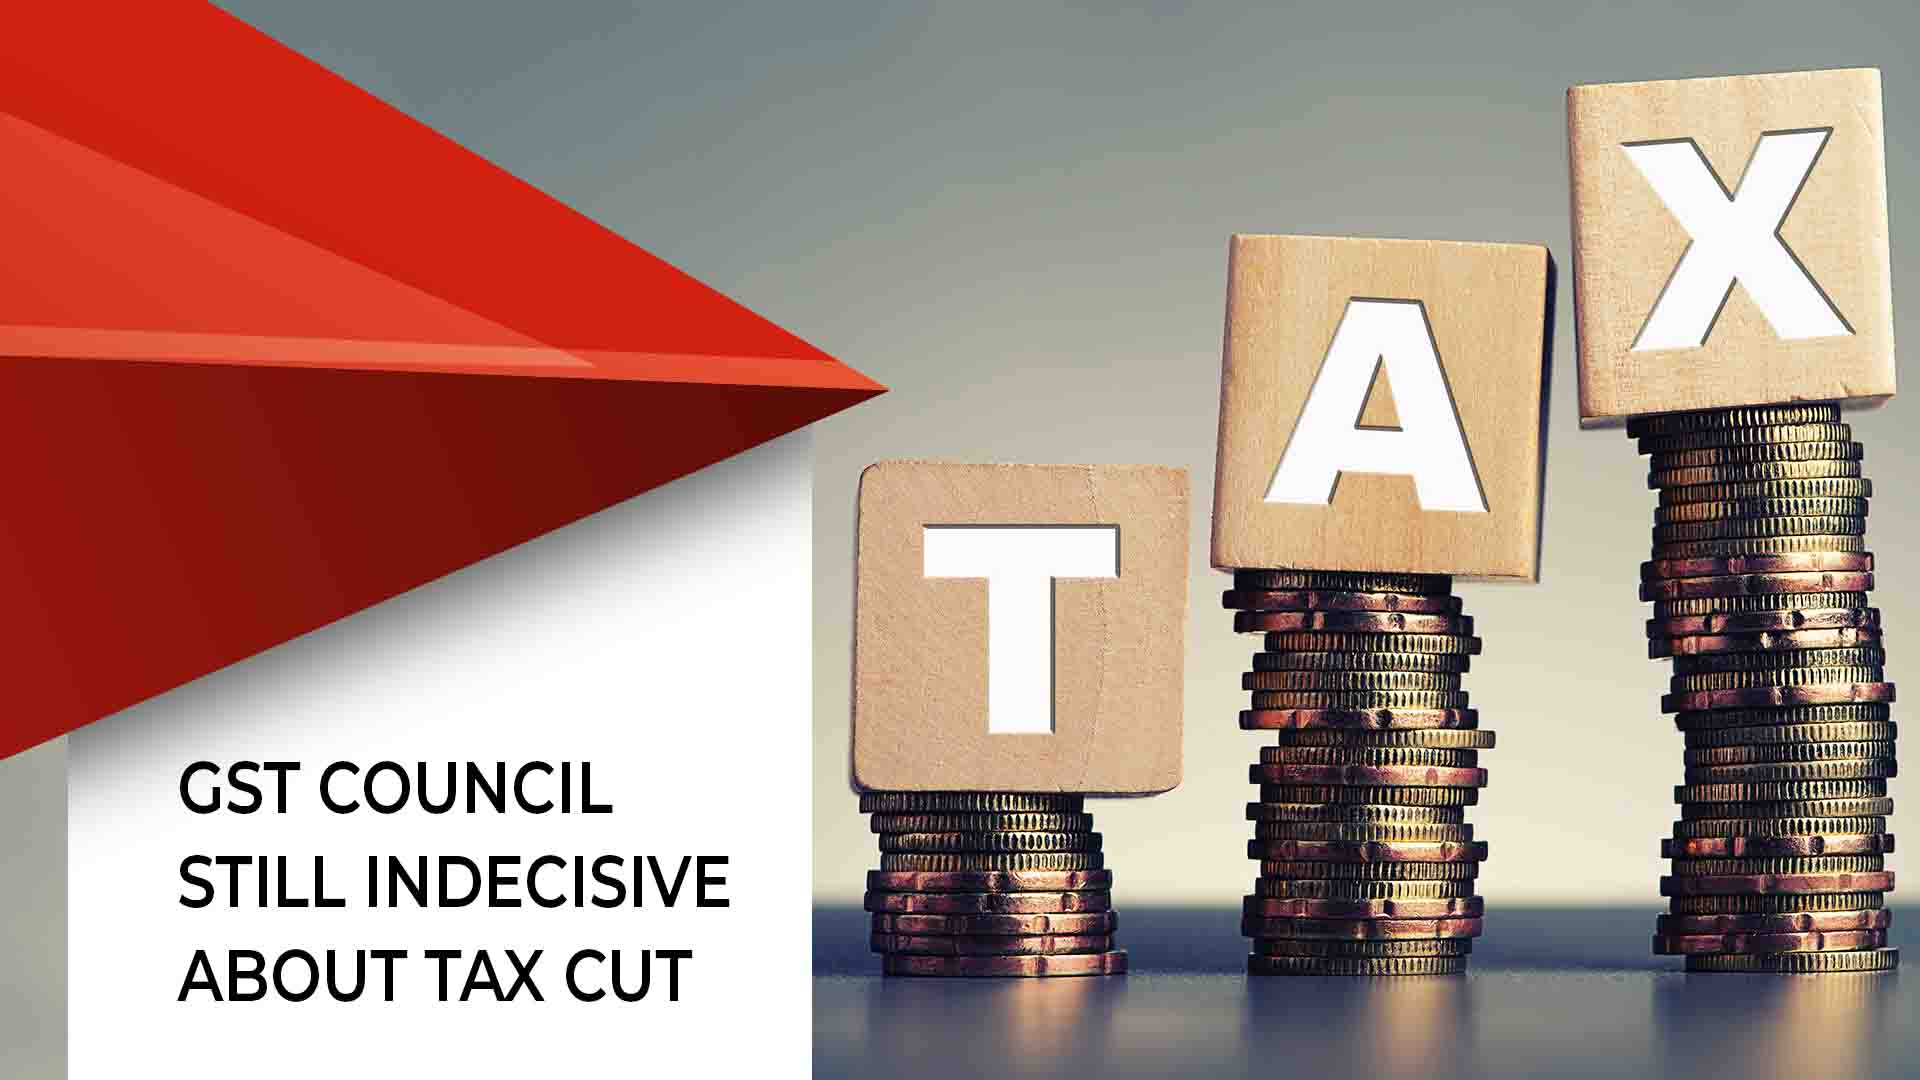 GST Council To Decide Fate Of GST In Next Meeting